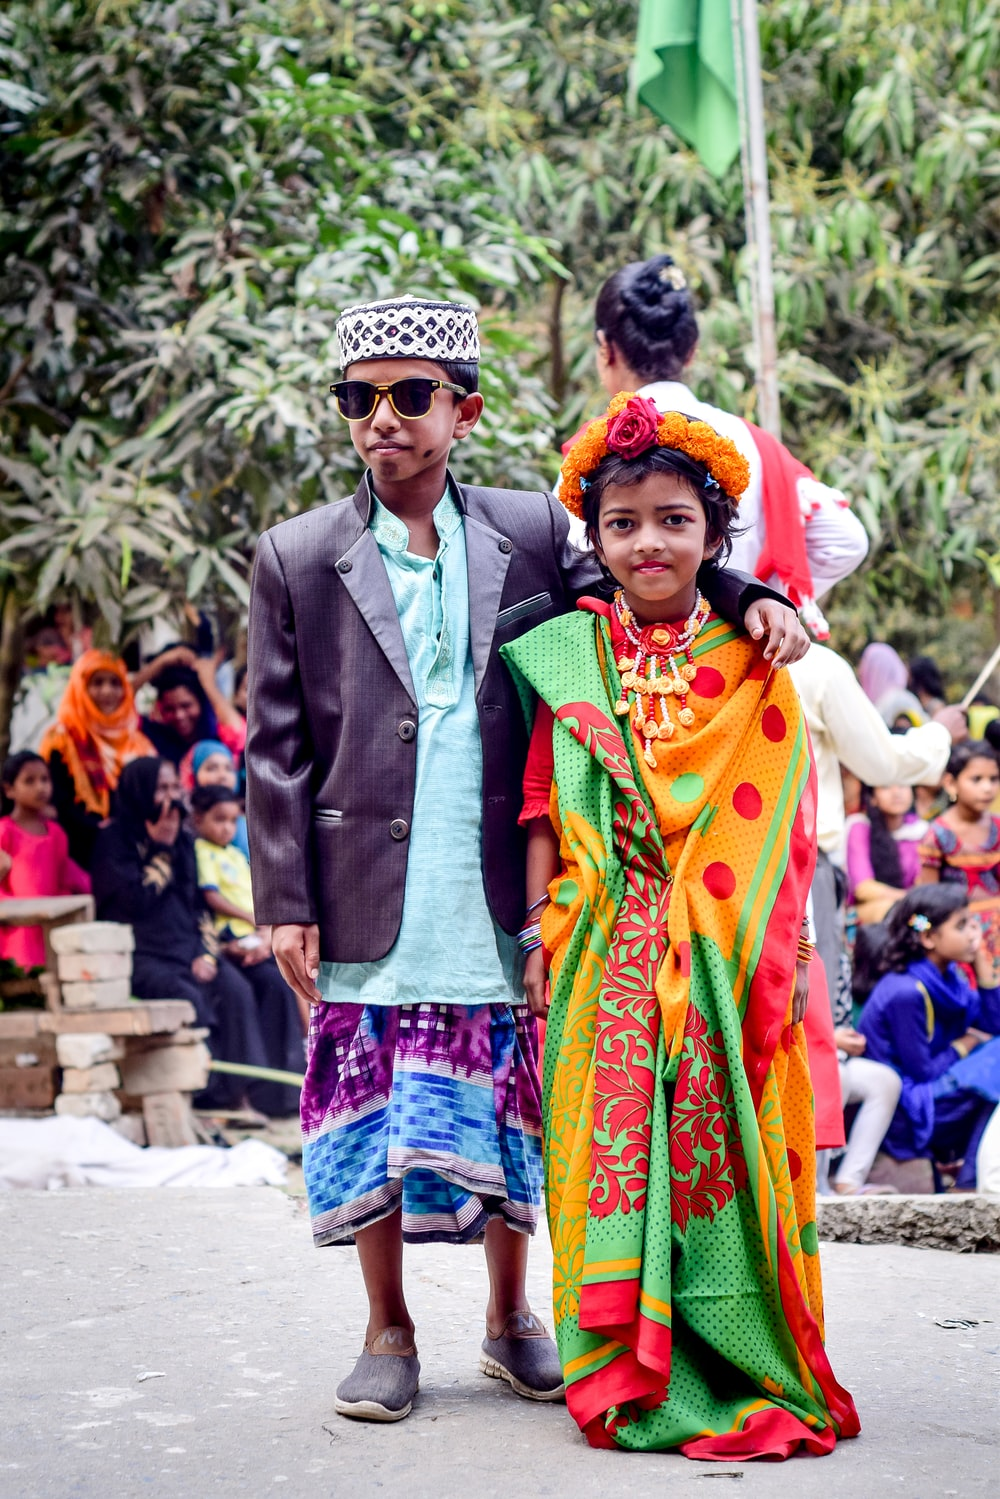 man in green suit jacket and woman in green and yellow sari dress